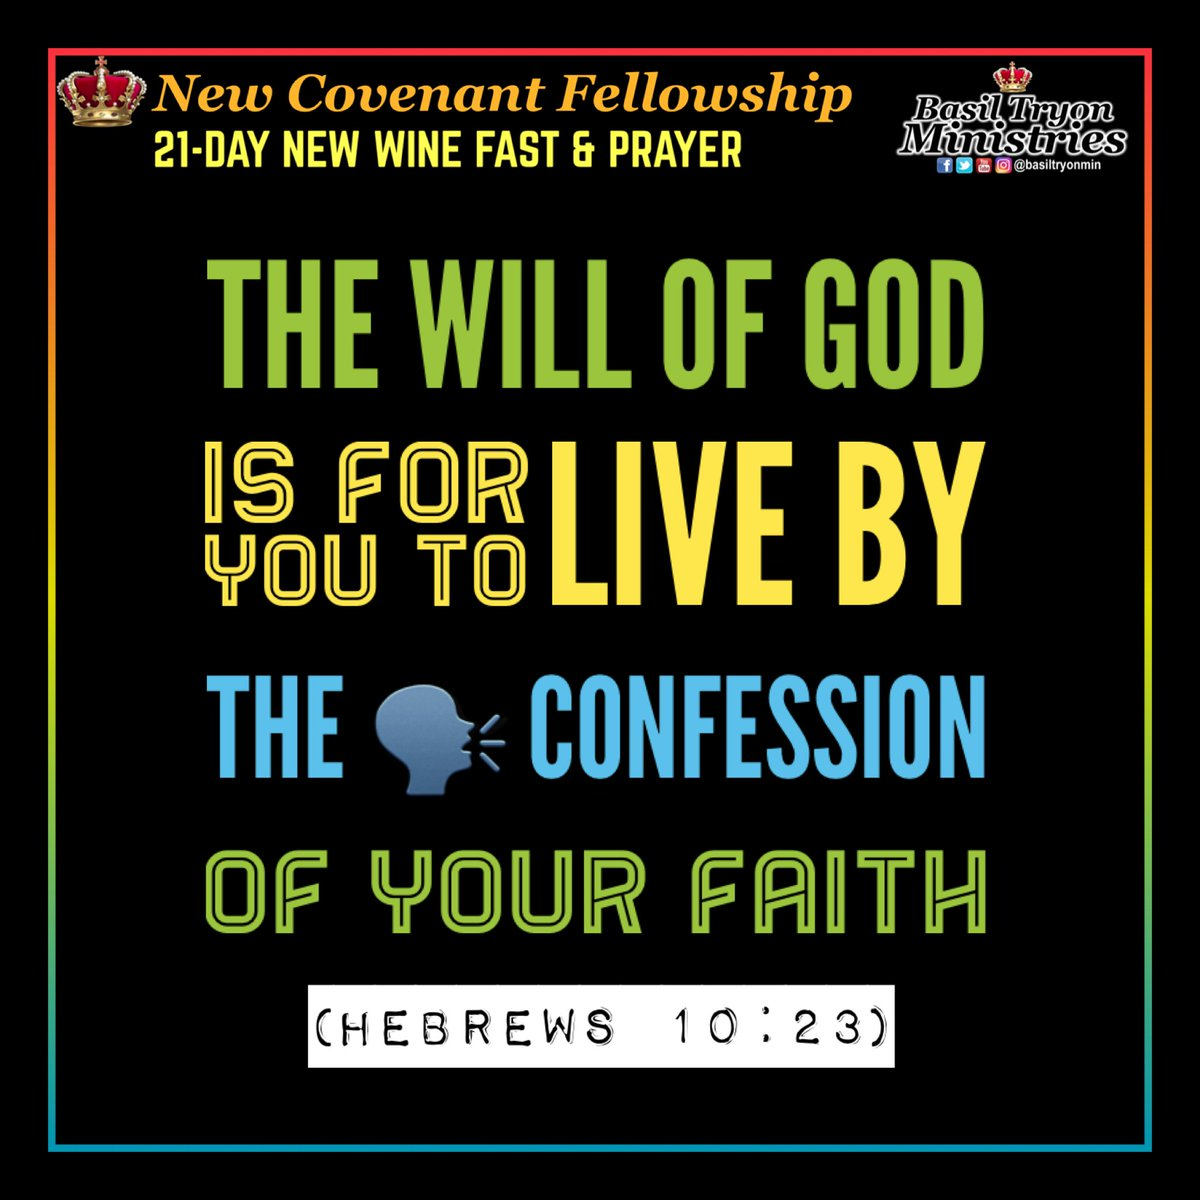 21-DAY NEW WINE Fast & Prayer DAY 18: THE WILL OF GOD IS FOR YOU TO LIVE BY THE CONFESSION OF YOUR FAITH (Hebrews 10:23)  #NCF #RAK #BTM #NewWine #Fast #Prayer #Day18 #Will #God #Faith #Confession